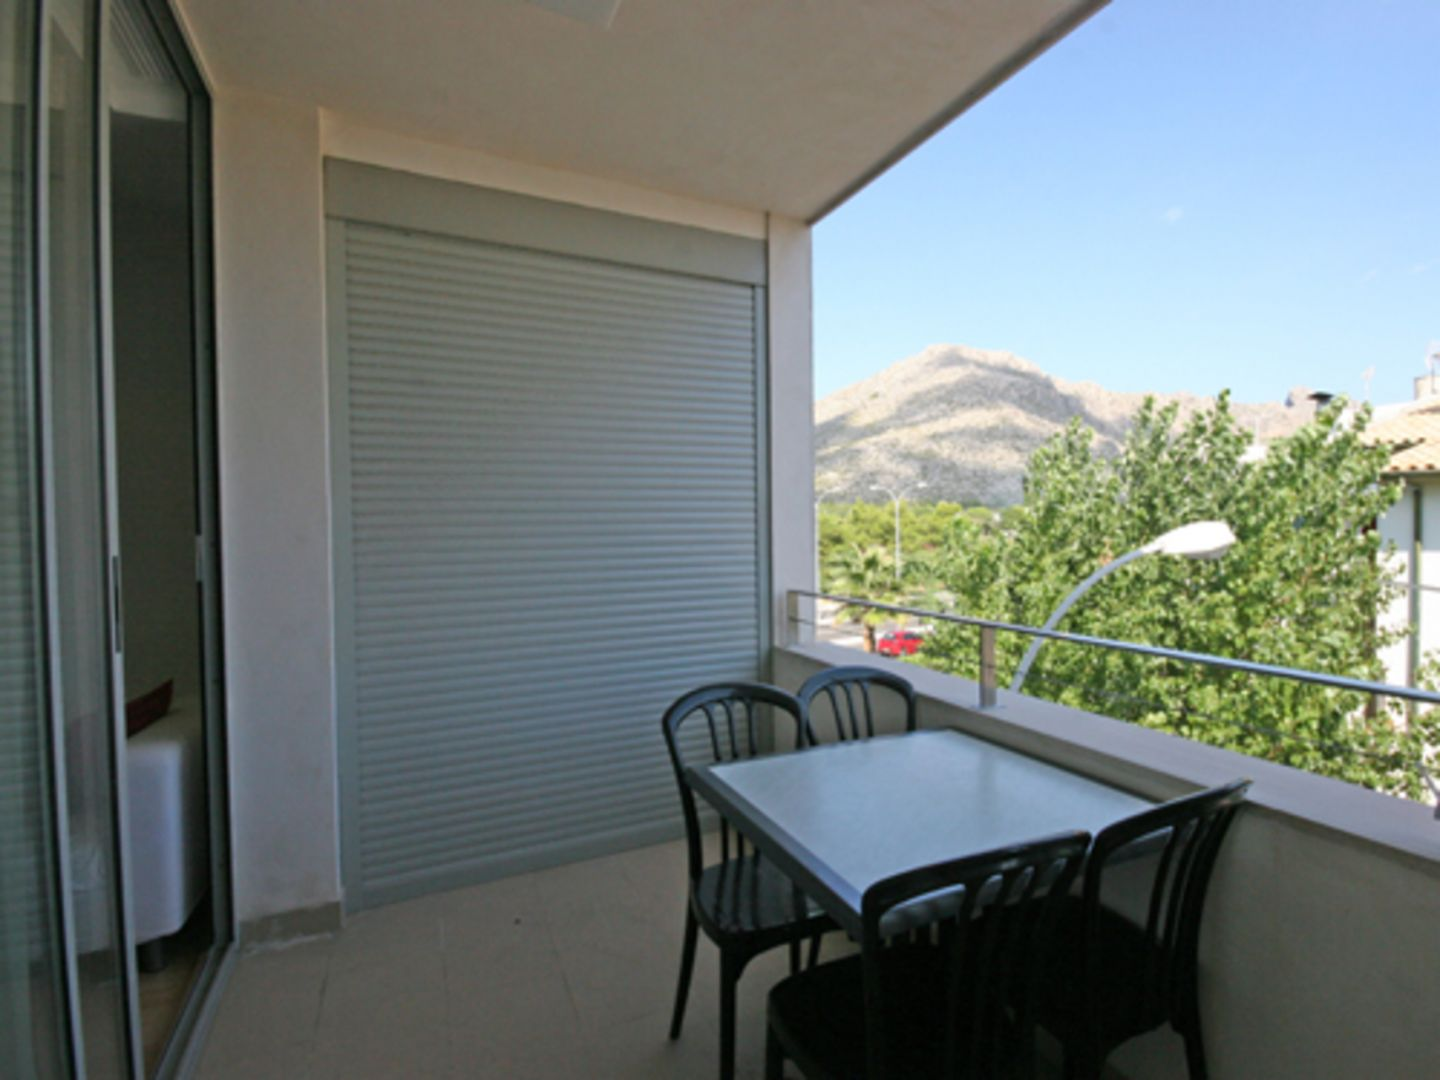 2 Bed Apartment for sale in PUERTO POLLENSA 3